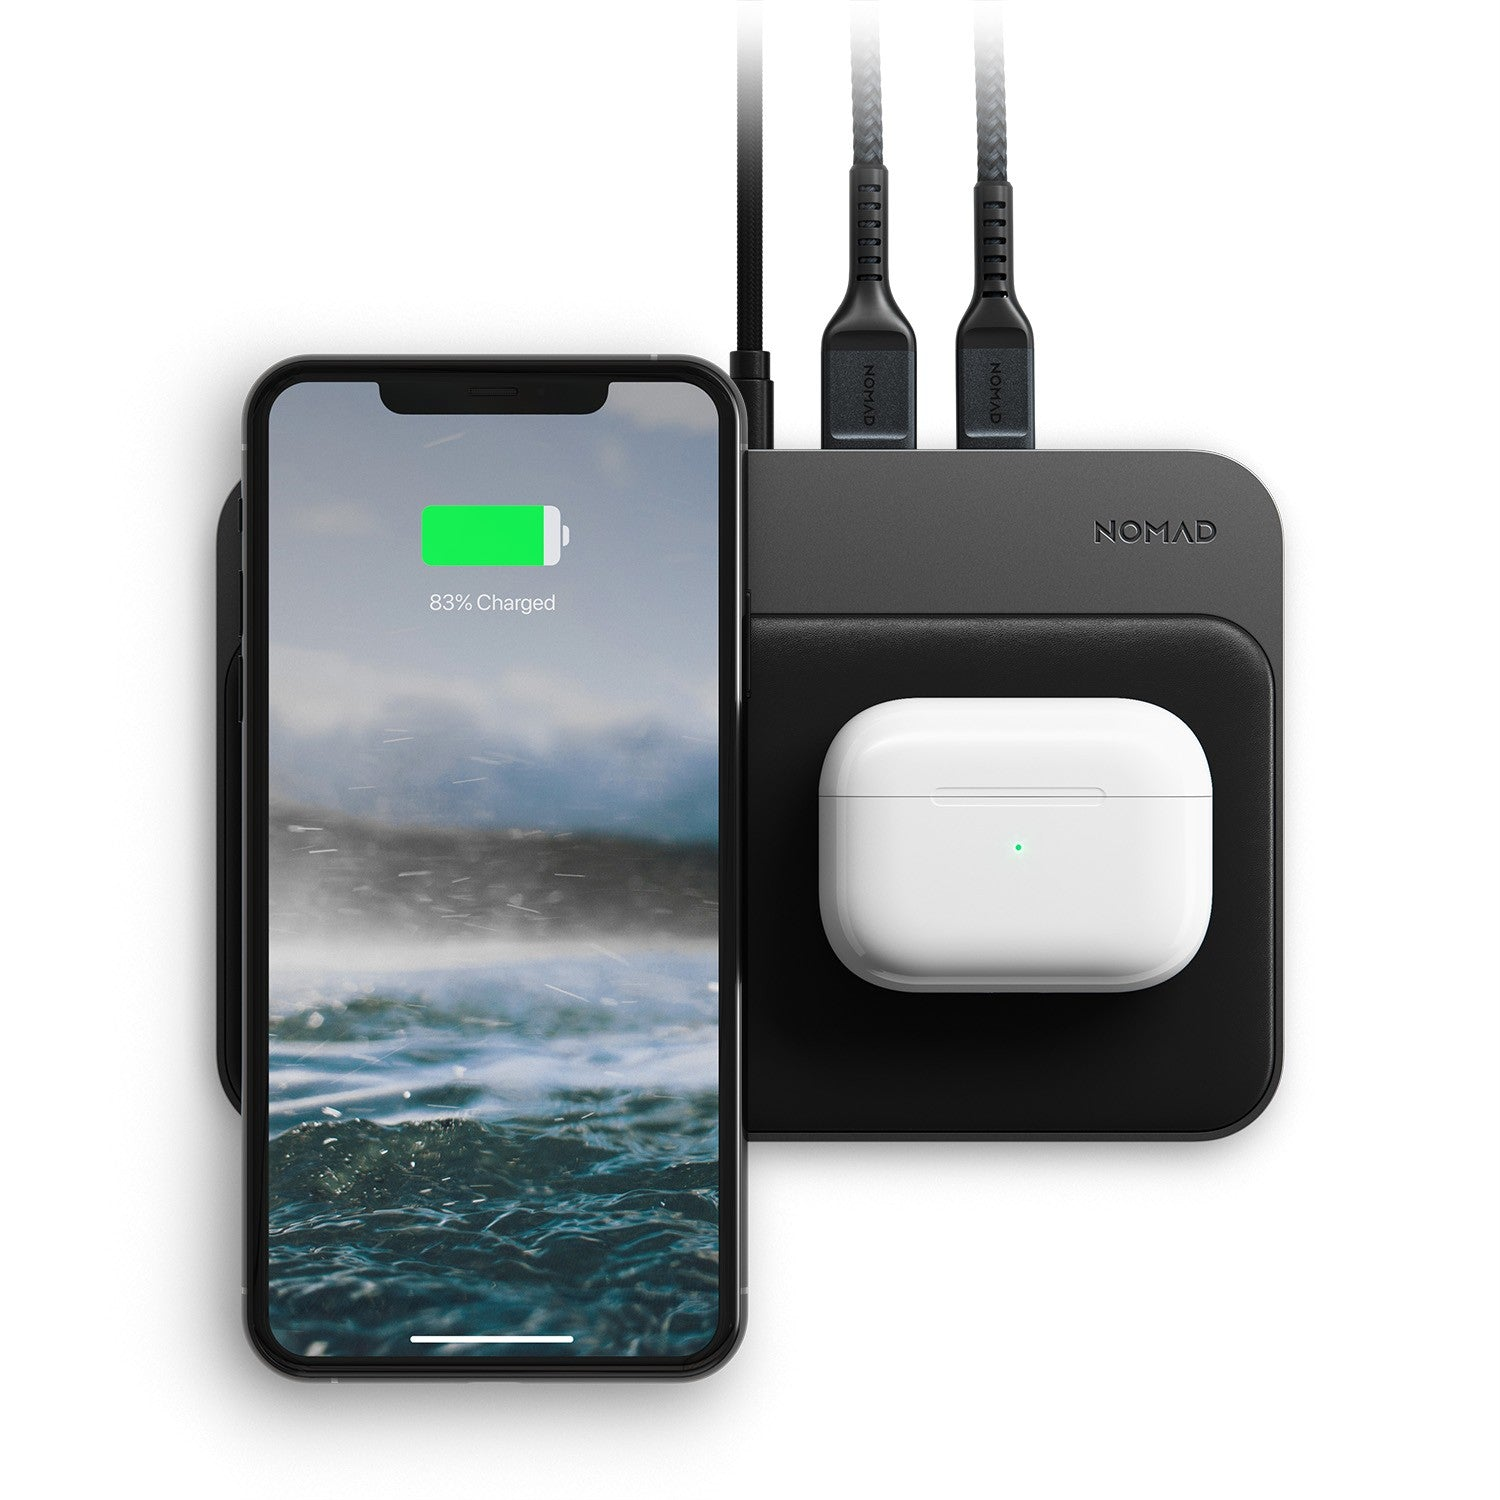 https://cdn.shopify.com/s/files/1/0384/6721/files/856504015619_Feature_3_-_iPhone_AirPods_Cables_-_White.jpg?v=1581456095